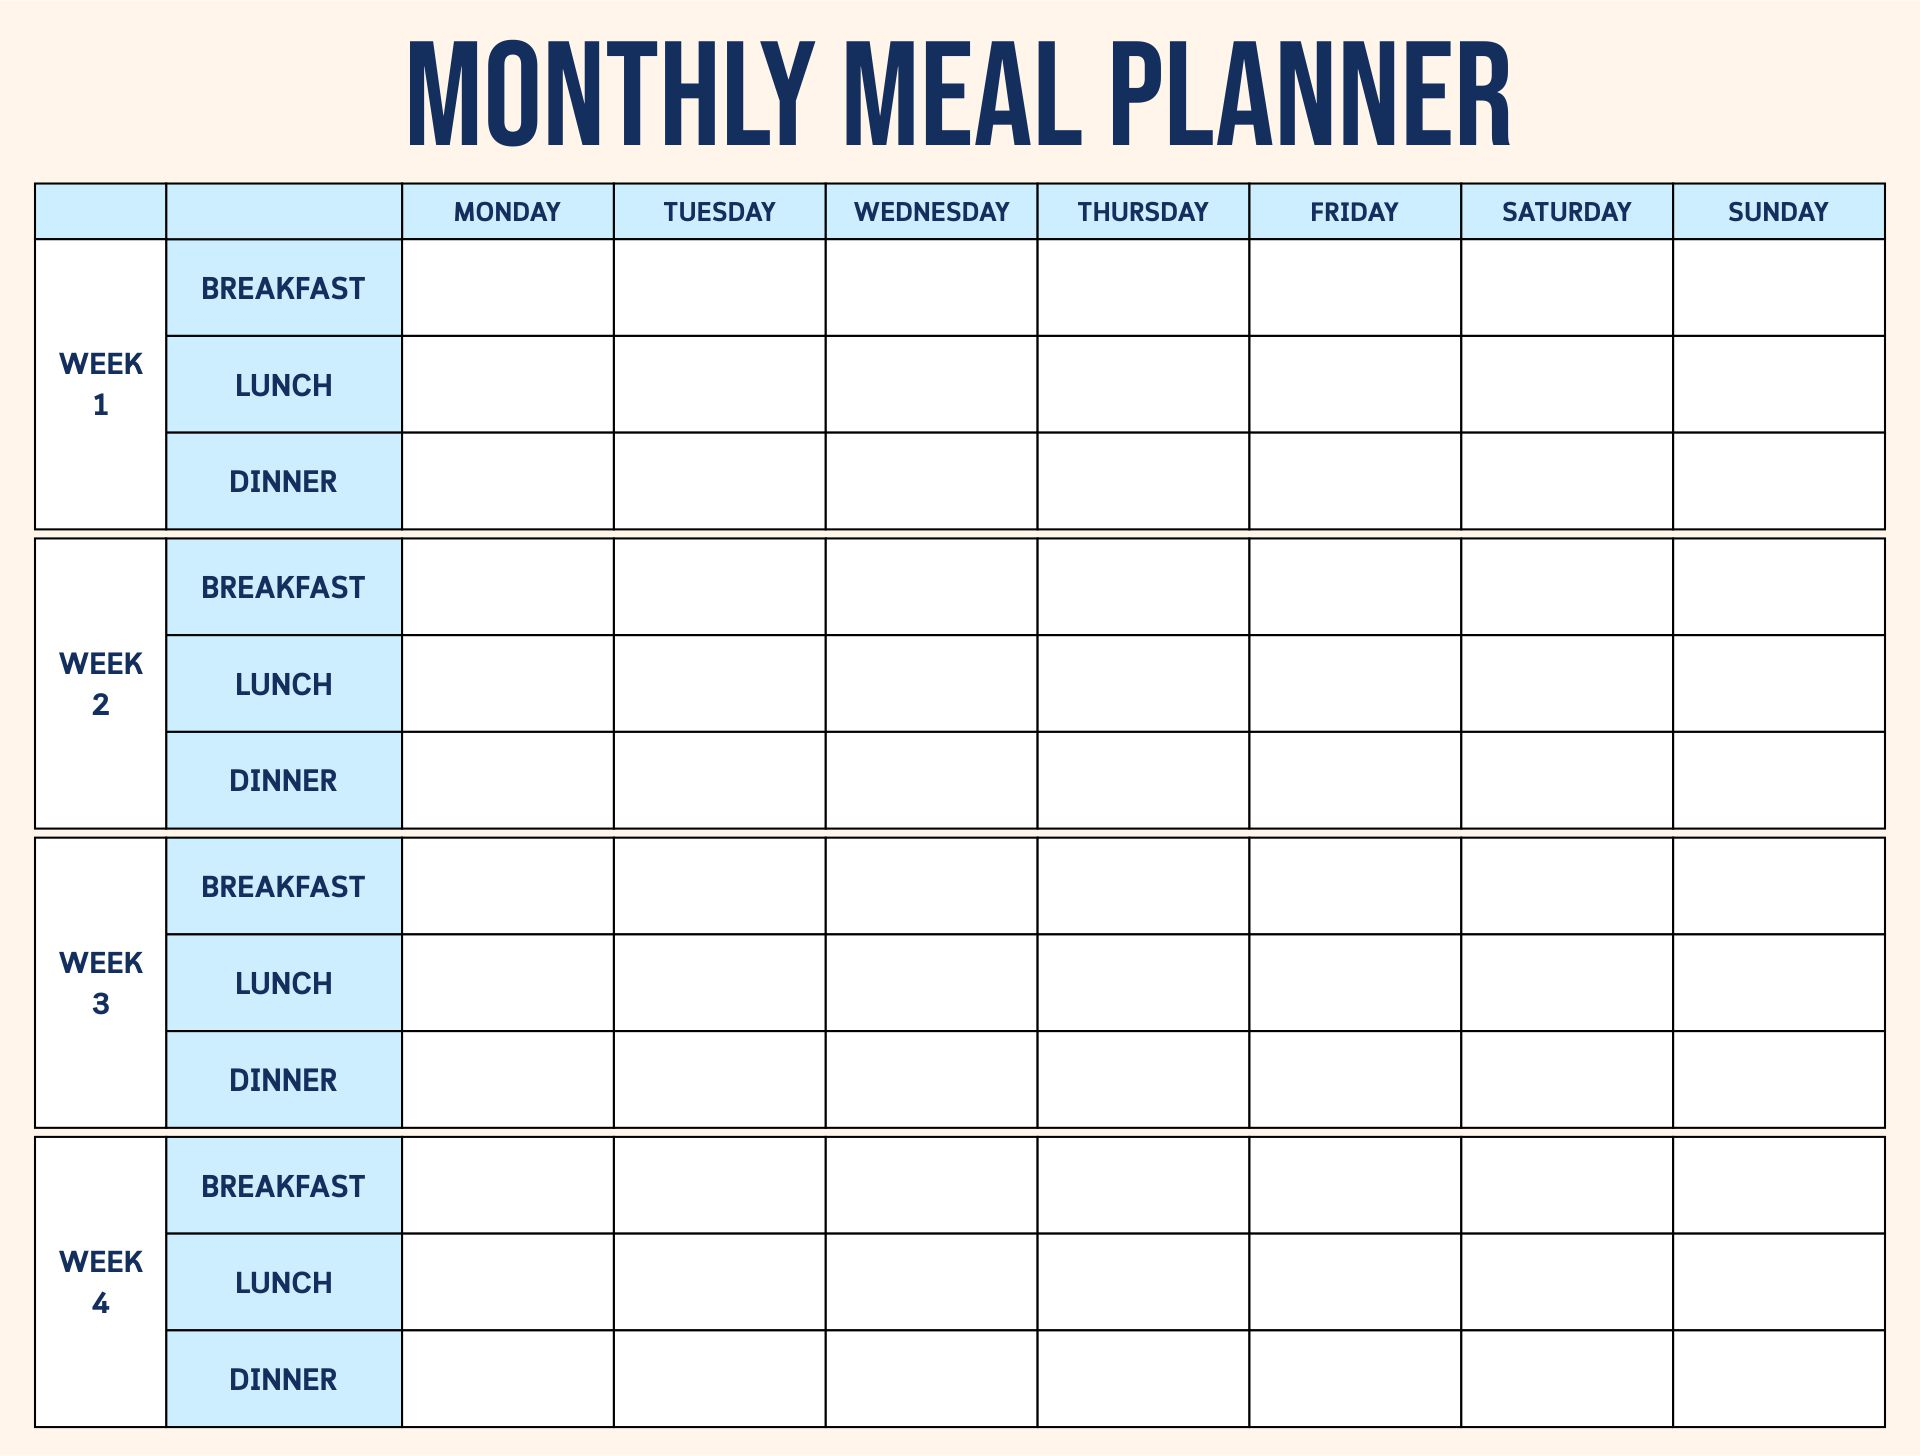 Doc575408 Daily Menu Planner Template Daily Meal Planner – Planner Format